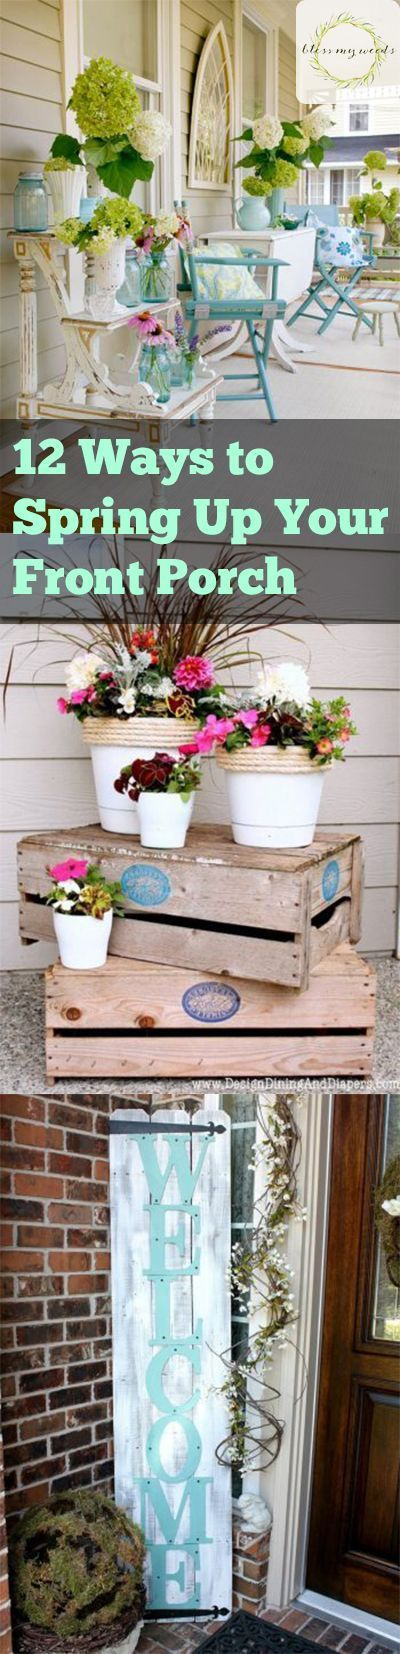 Adding a sign to your porch os the best way to bring in the spring spirit to your home! It can be a small one above some flowers, or a big wooden one that you hang up. Just use whatever you think would be best! Flowers are a perfect way to bring the sprin